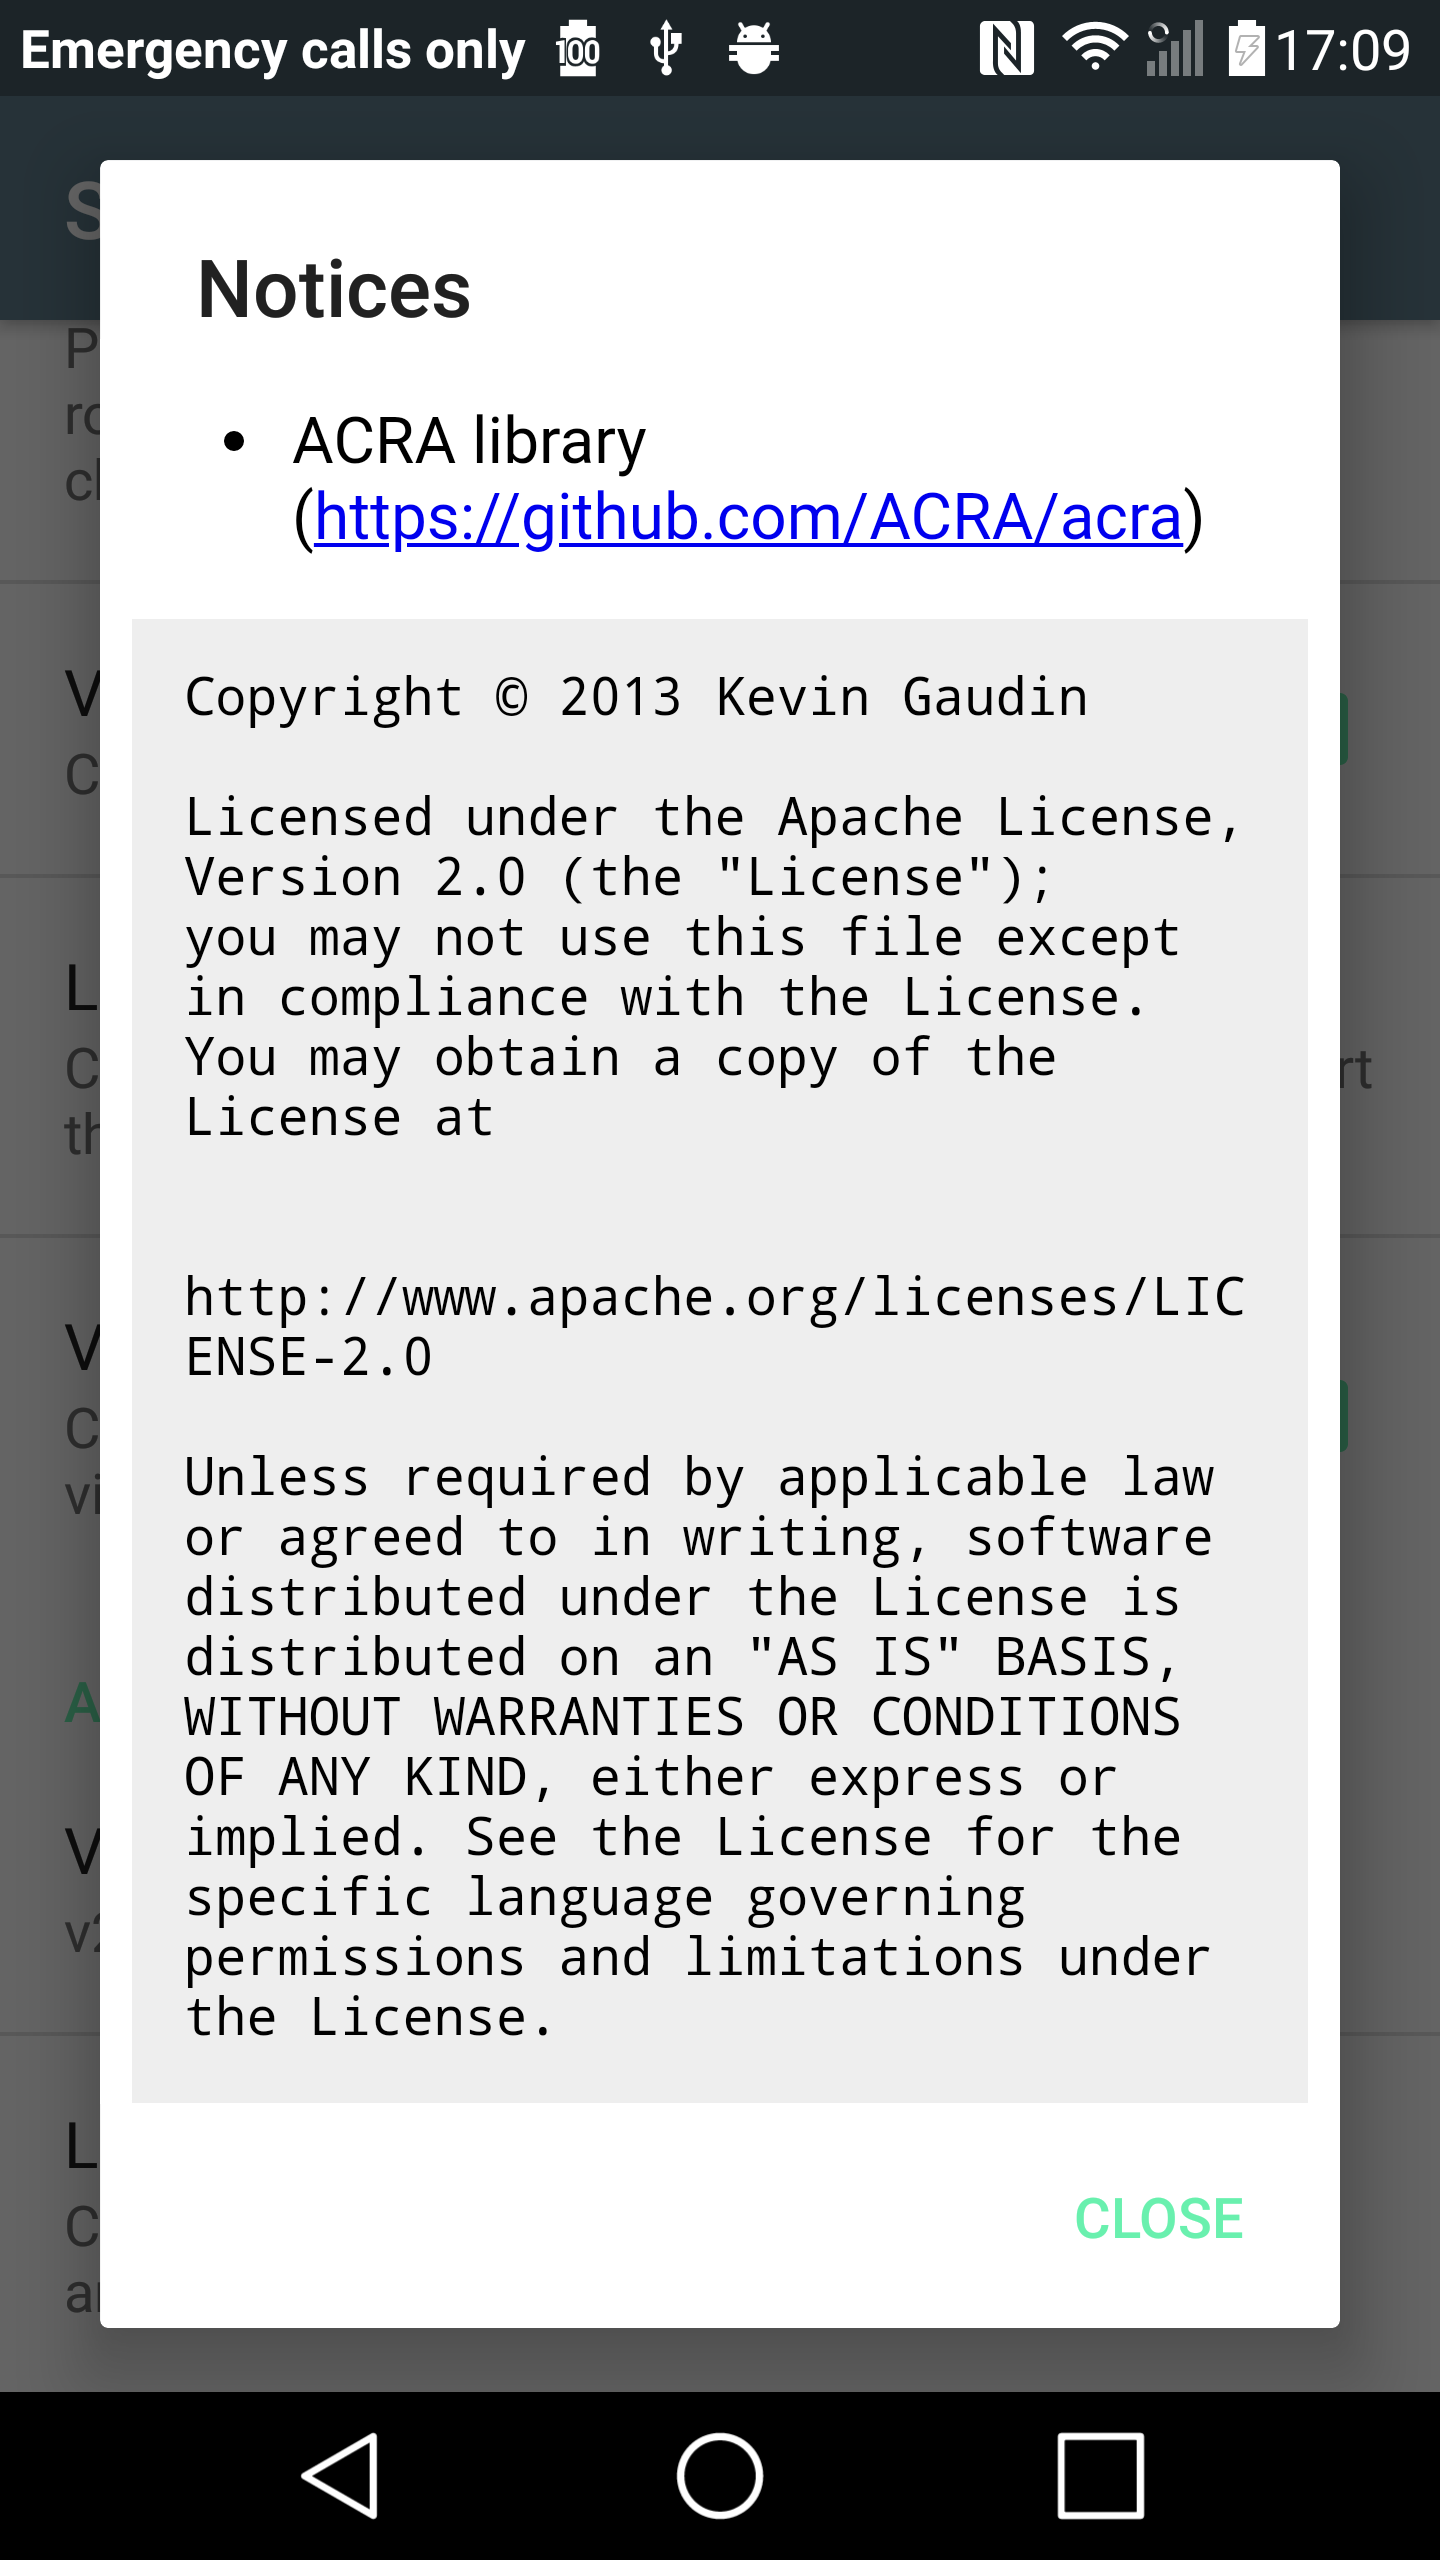 Some licenses